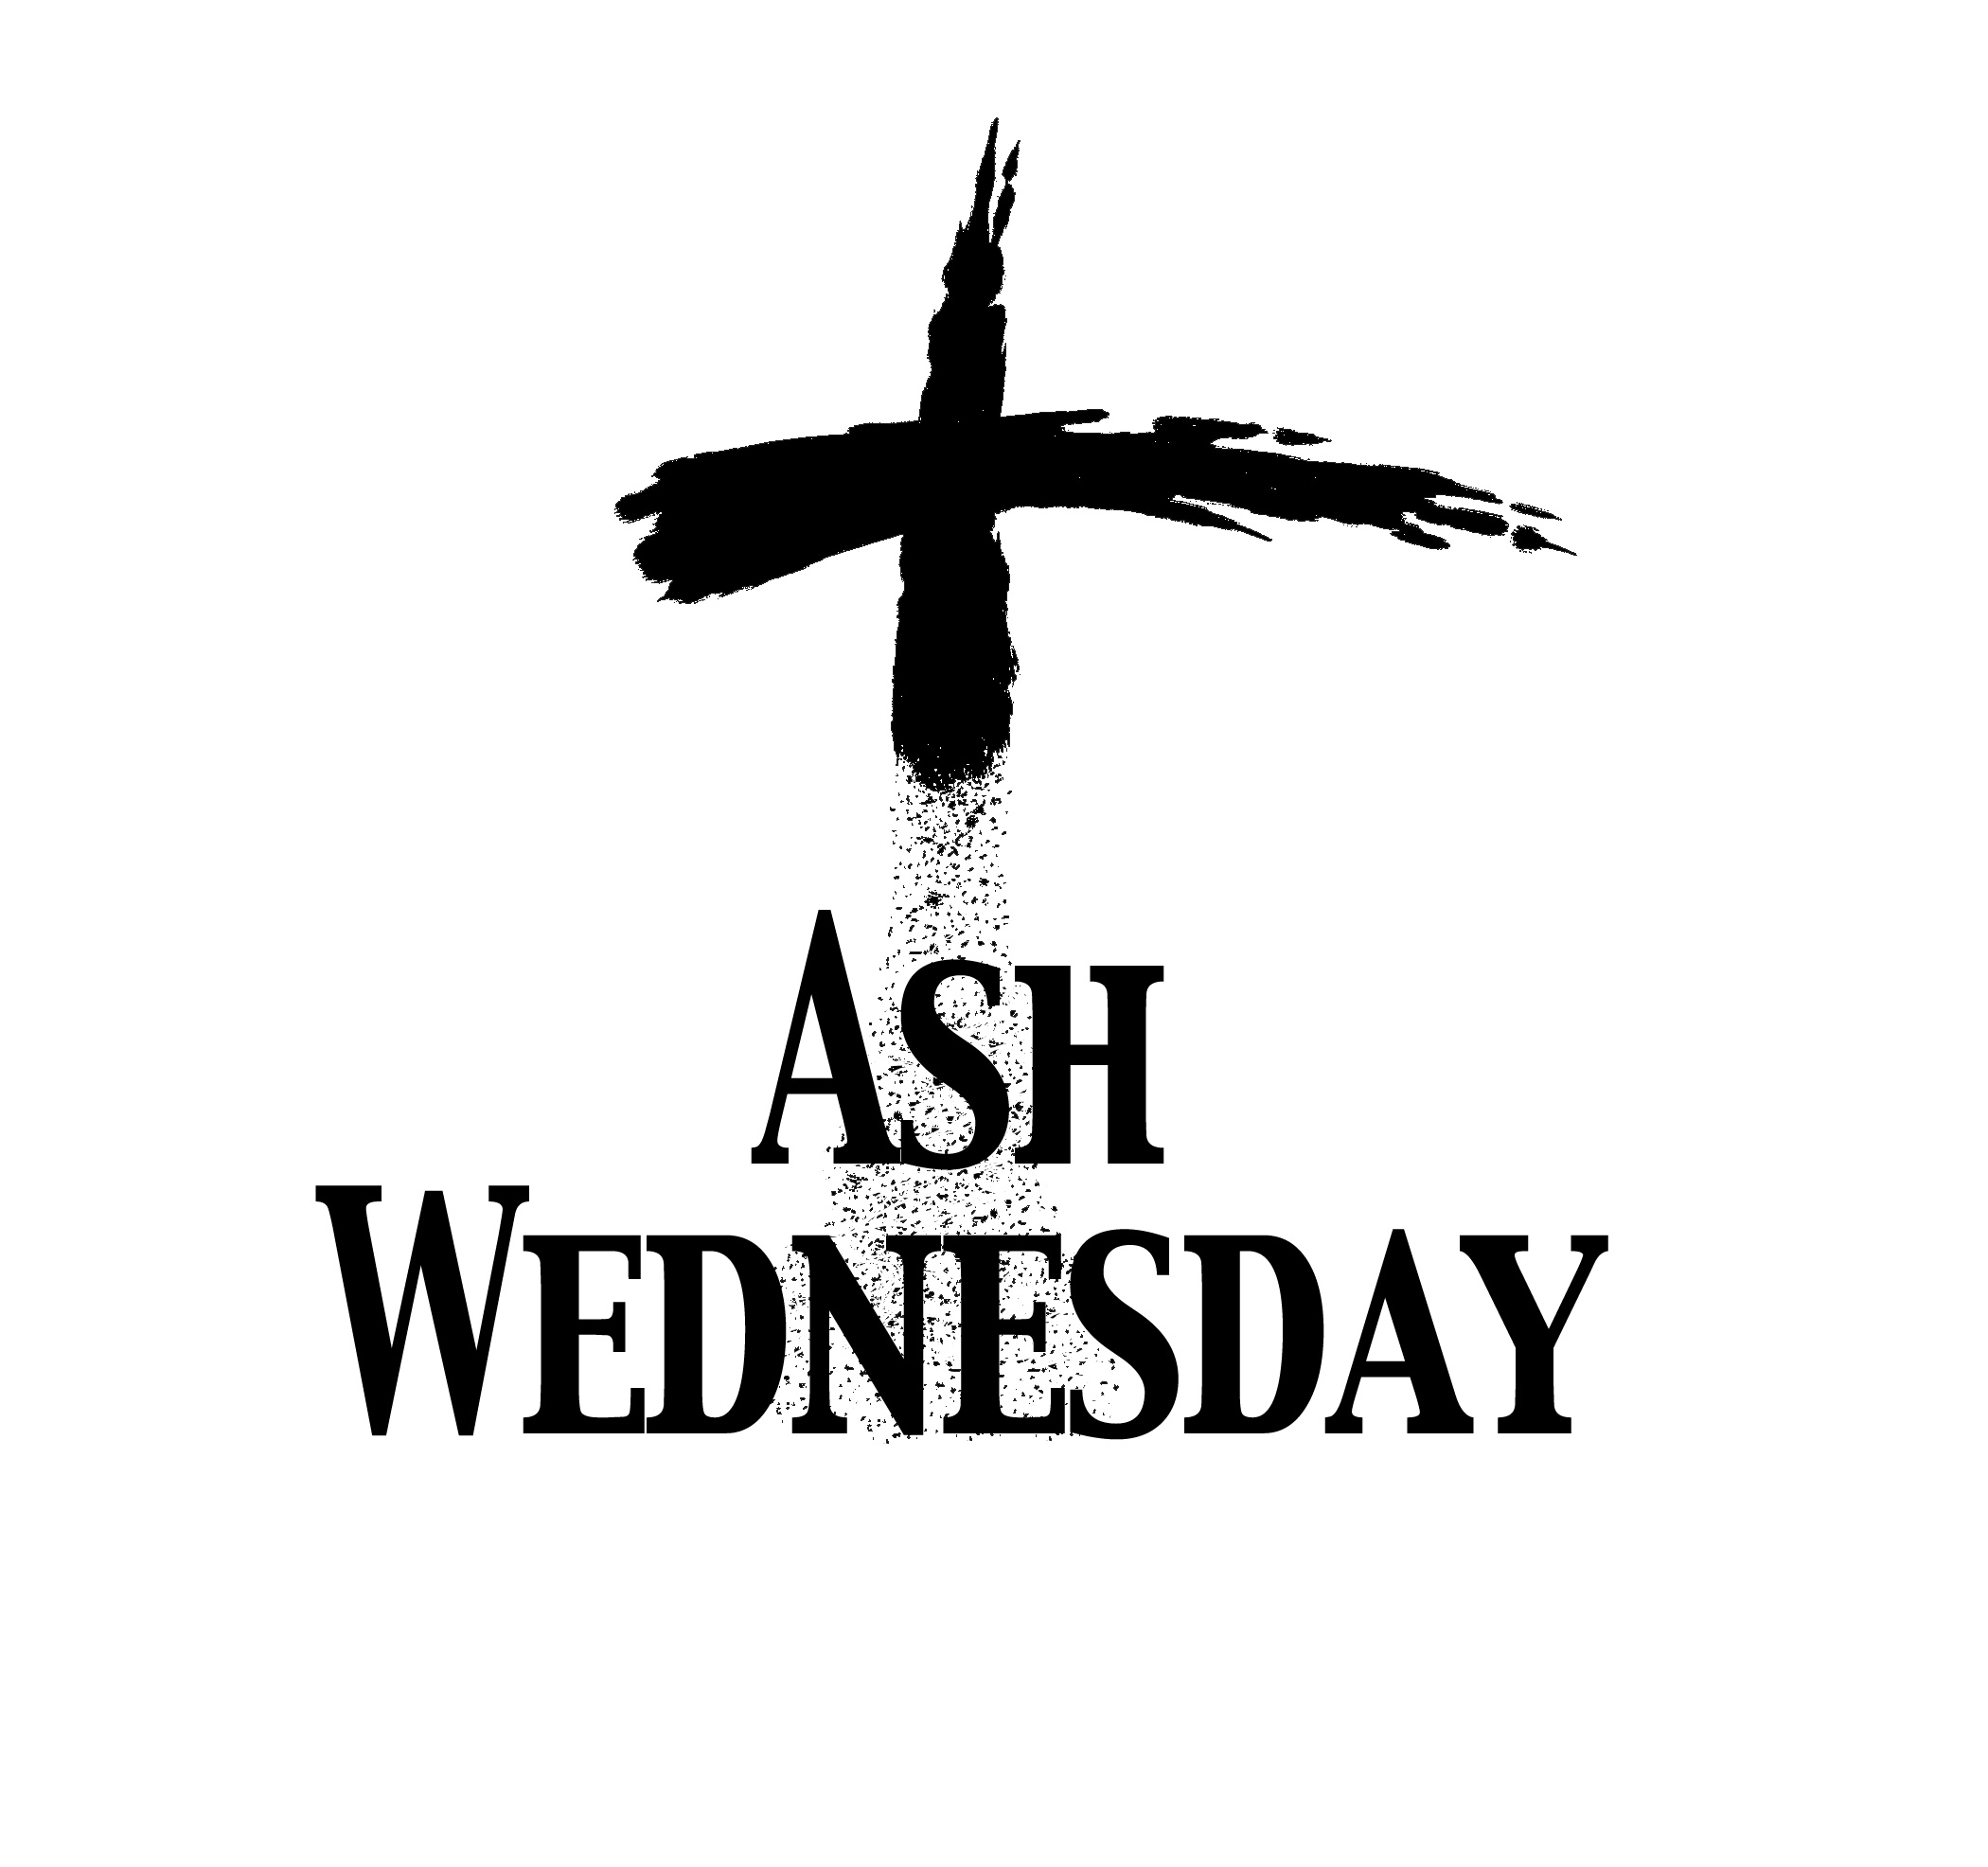 ash-wednesday-free-clipart-1